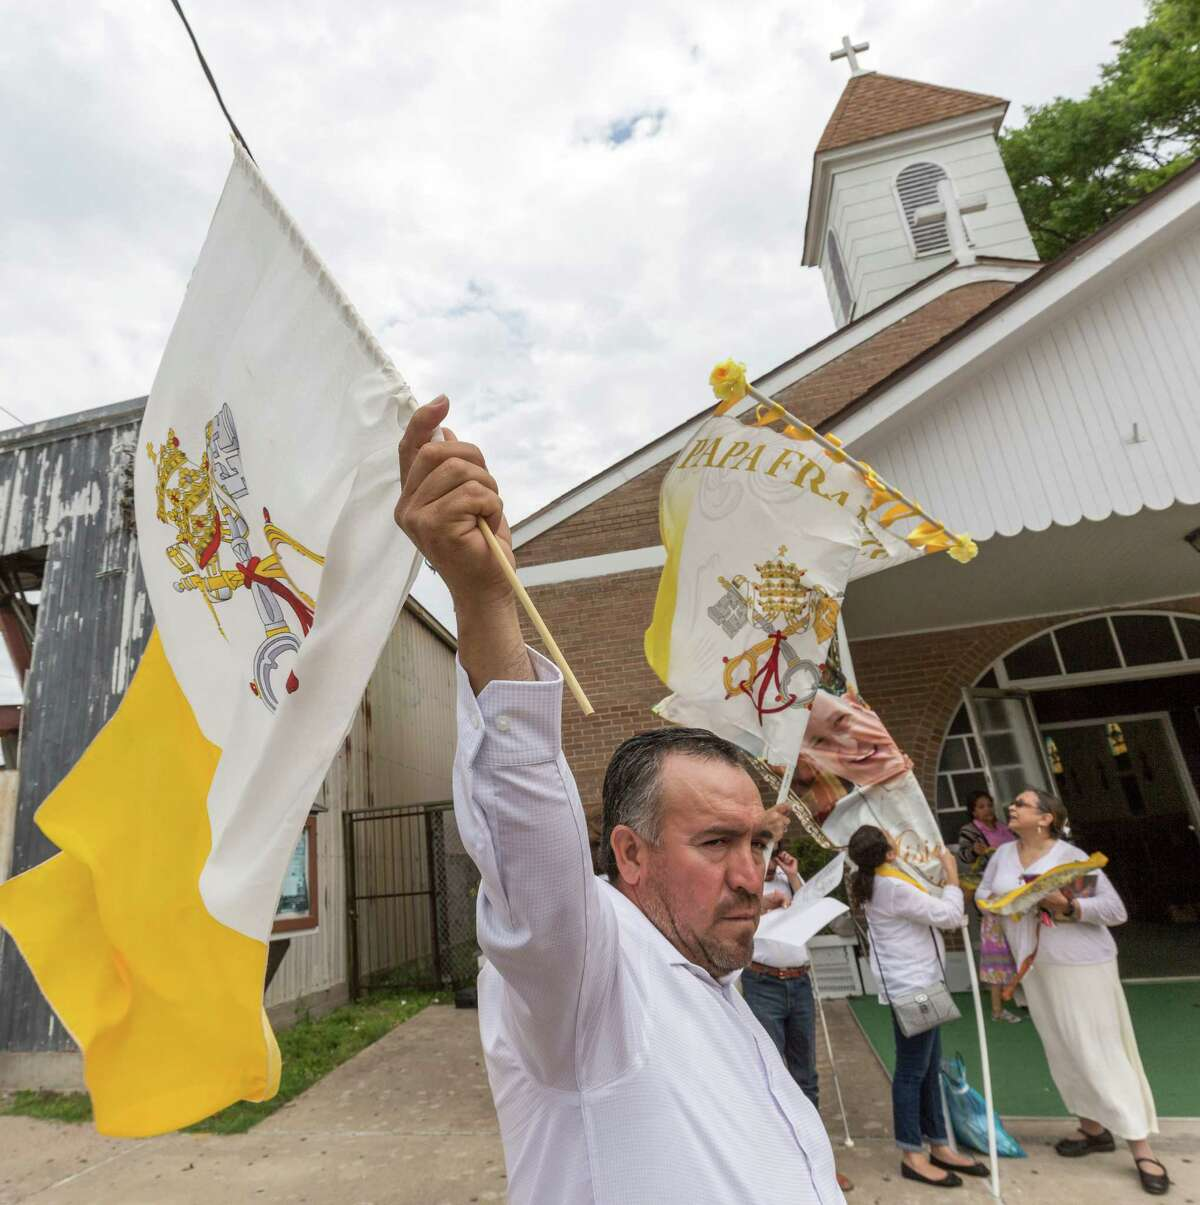 Church-goers and well-wishers arrived throughout the morning to protest the merger of two Catholic churches and the loss of their beloved St. Stephen Catholic Church, 1912 Center Street. A request has been sent to the Pope to save the church. ID: Raul Perez shows a determined face as part of the protest. Sunday April 8, 2016